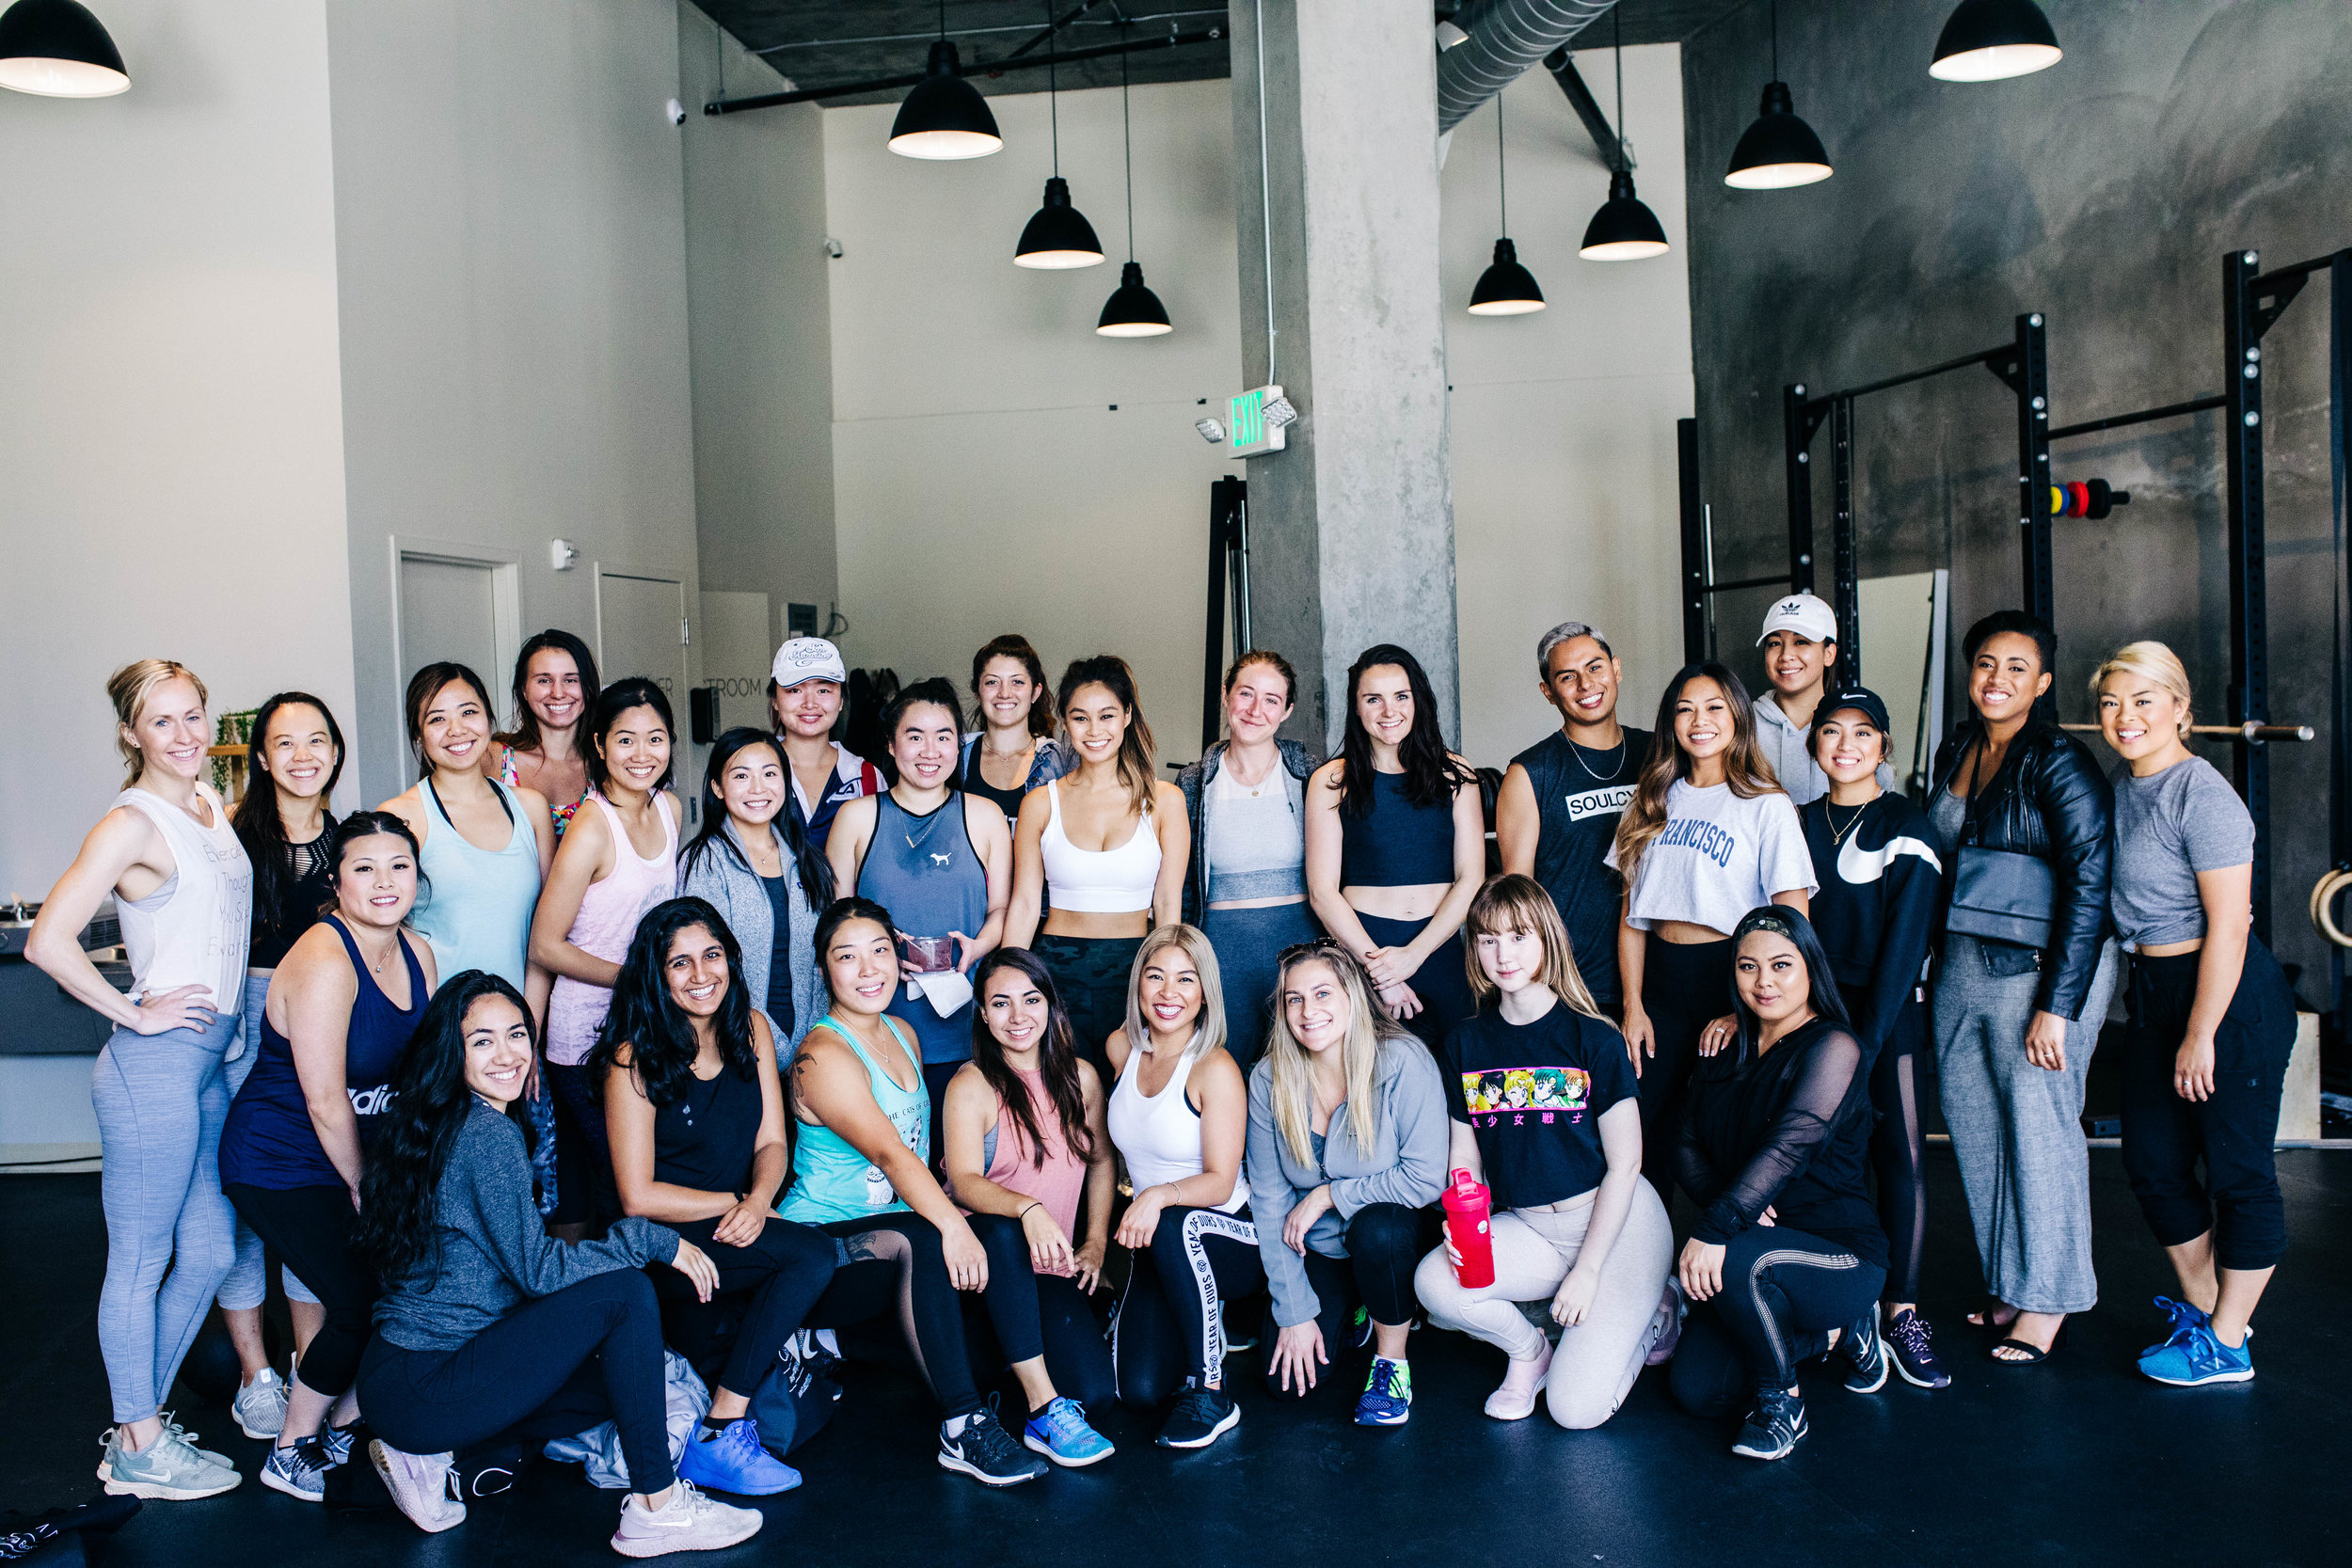 Strong Babes Workout Event   December 4th, 2018